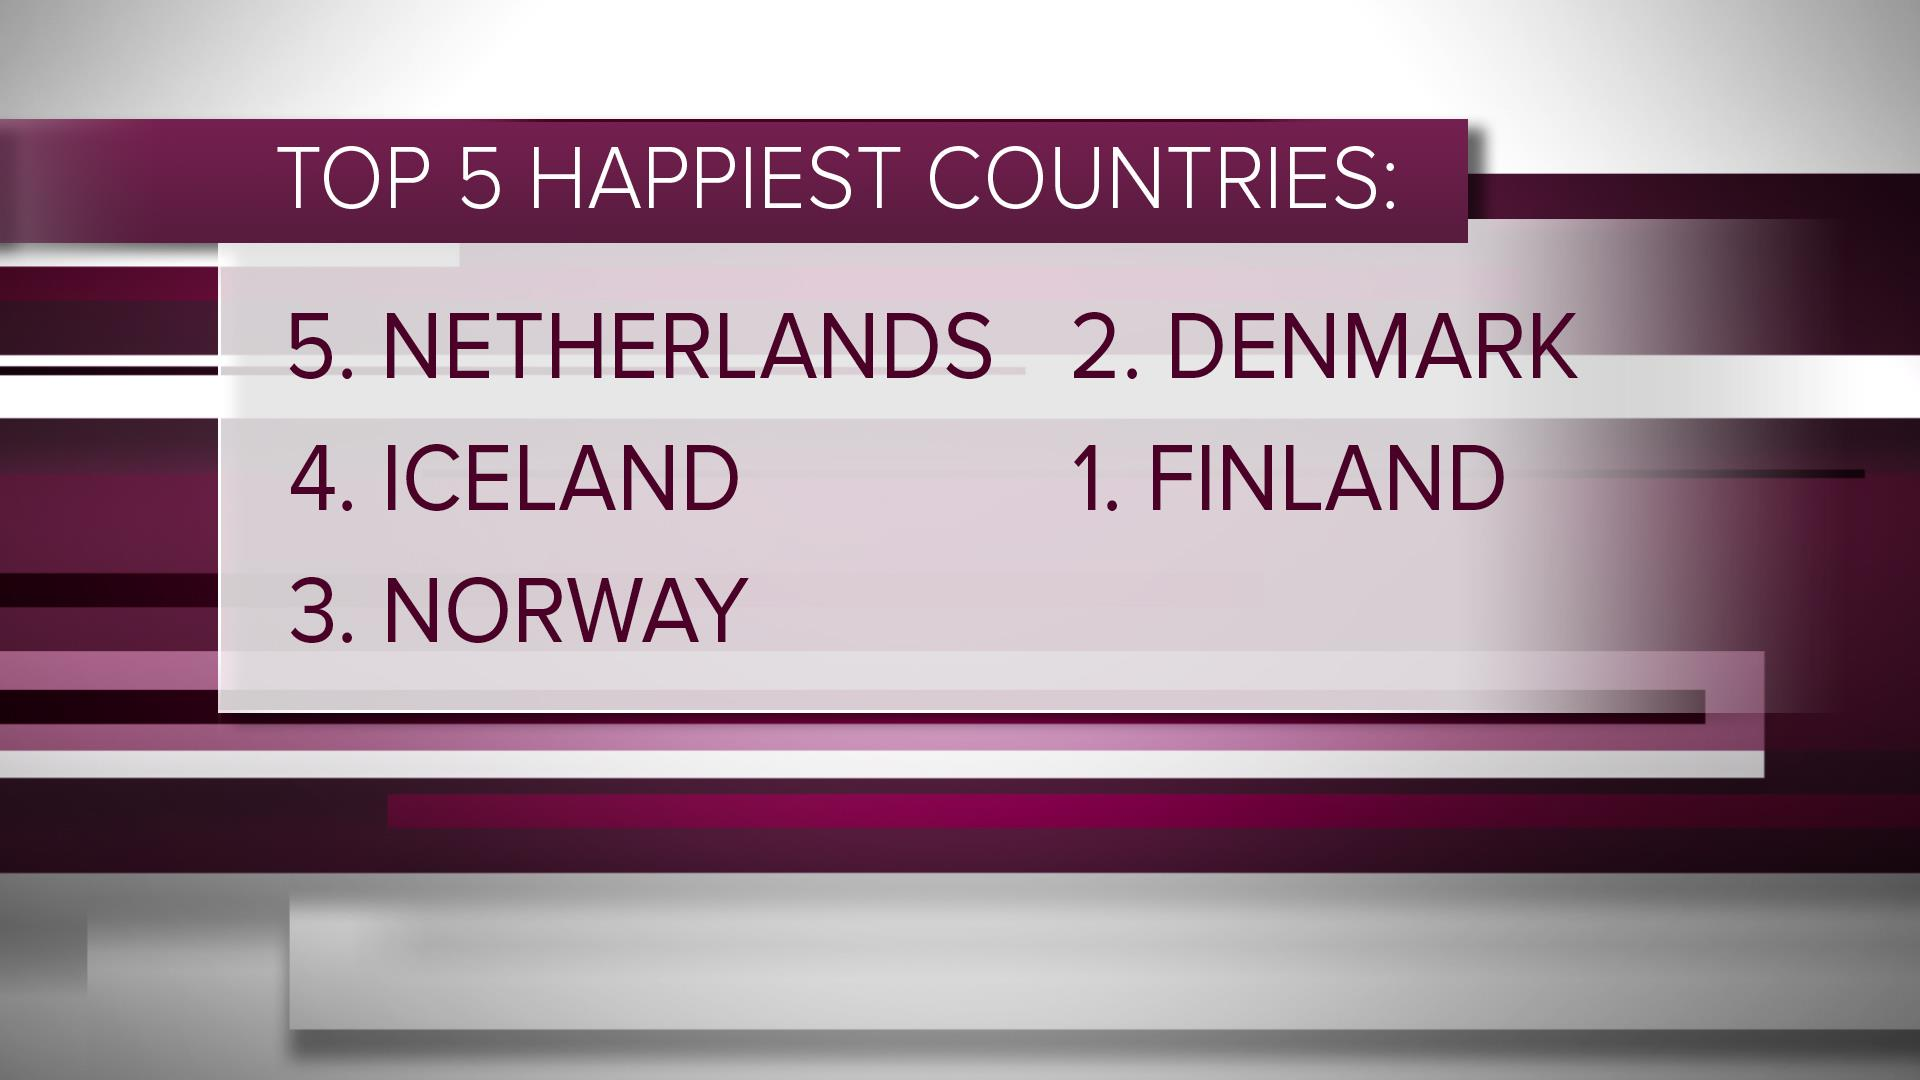 Finland is the happiest country in the world again, launches contest for free trip